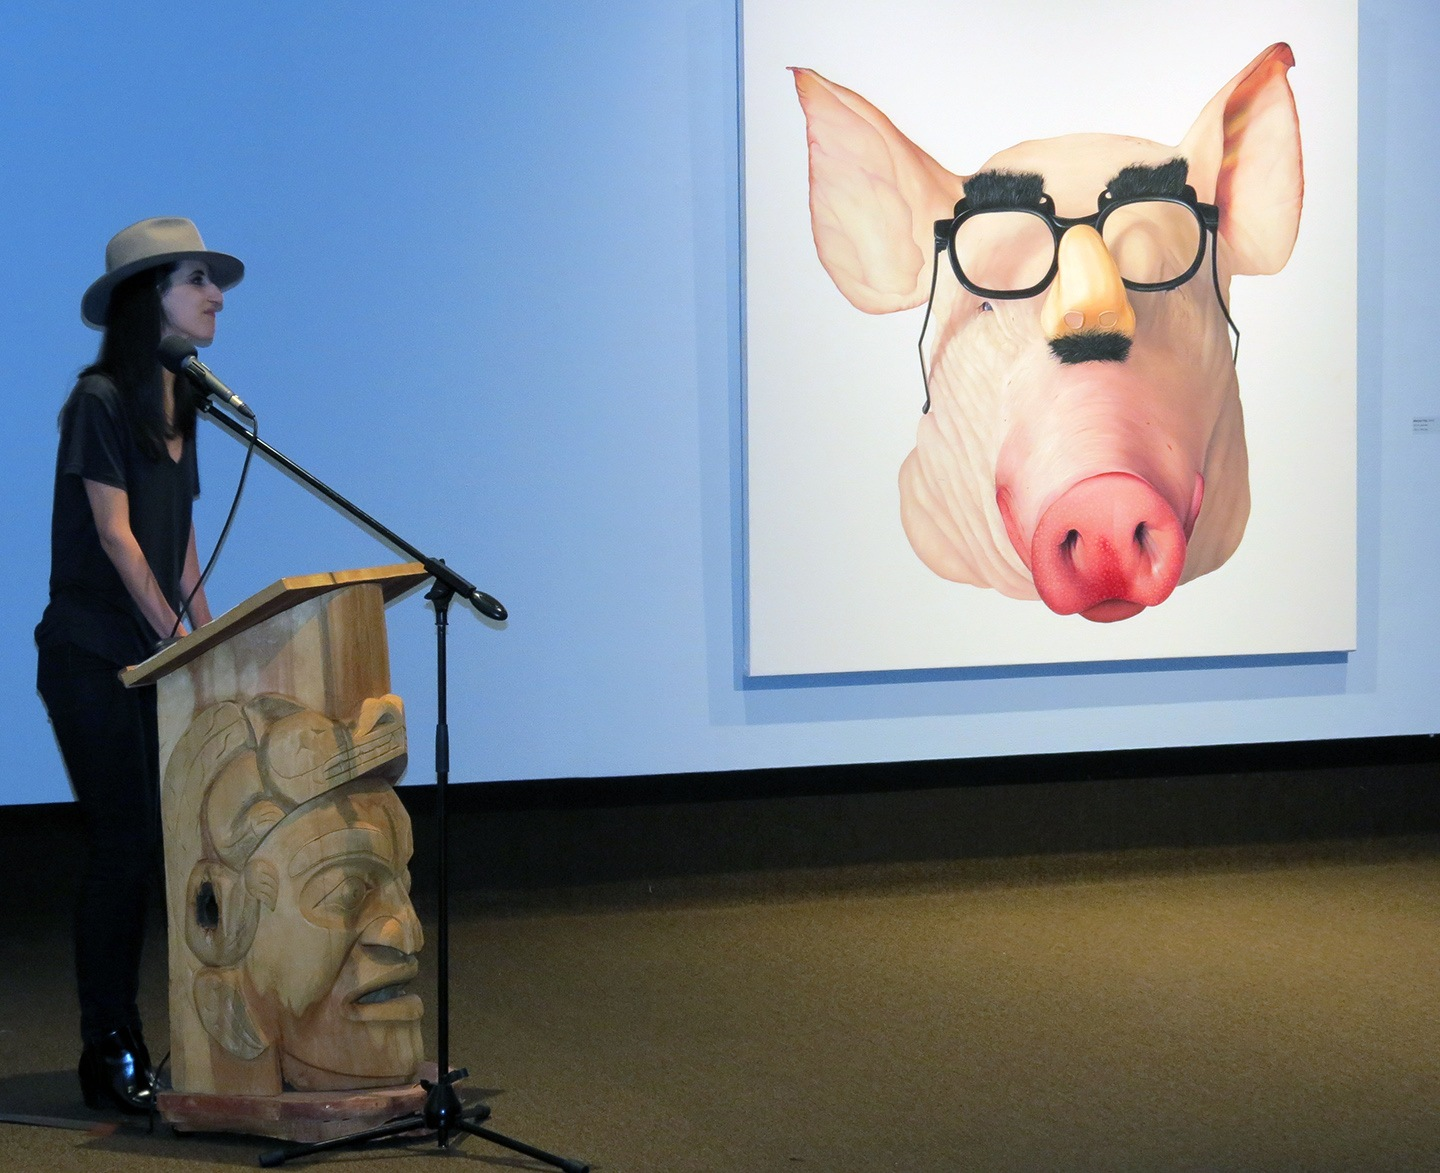 SWINE — Elizabeth Buset Unveils New Work at the Thunder Bay Art Gallery